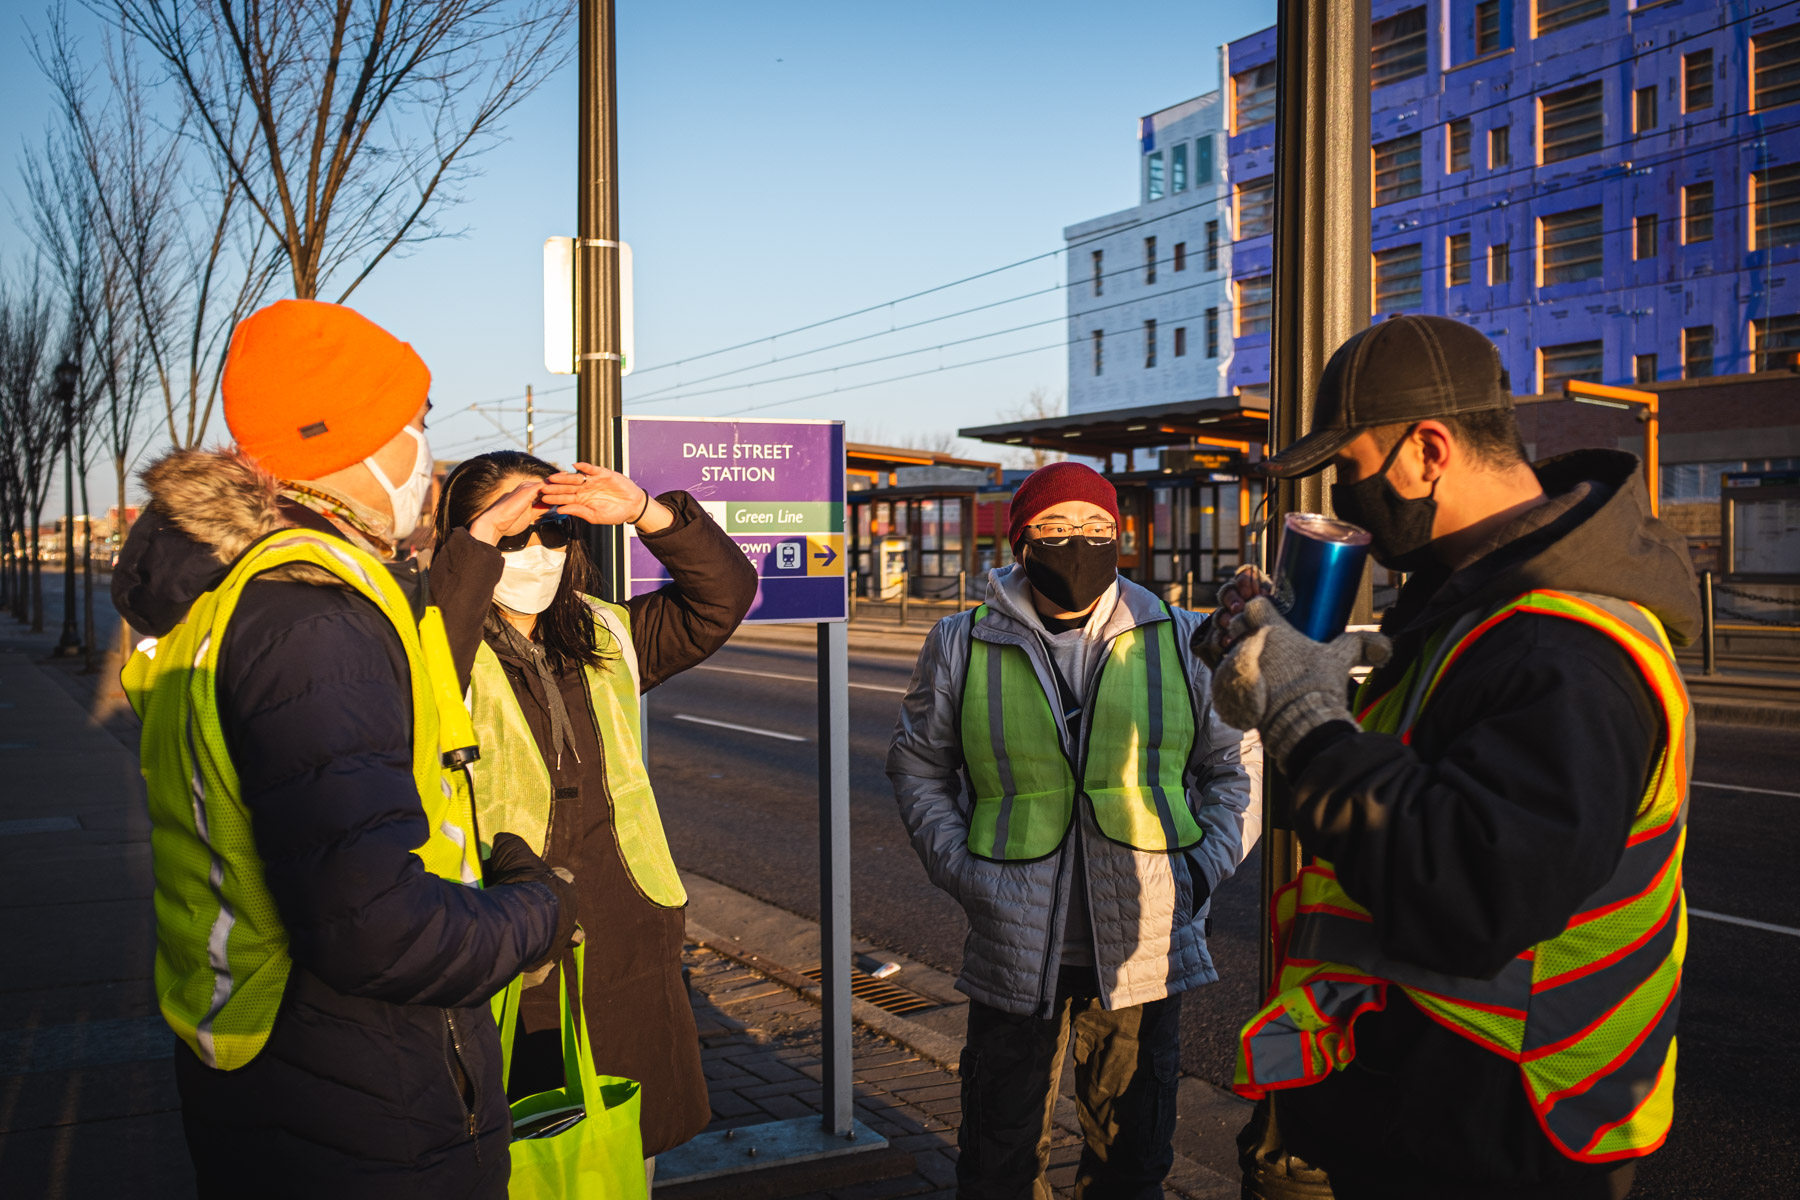 sahanjournal.com: New Minnesota safety patrol aims to stop anti-Asian hate in the streets